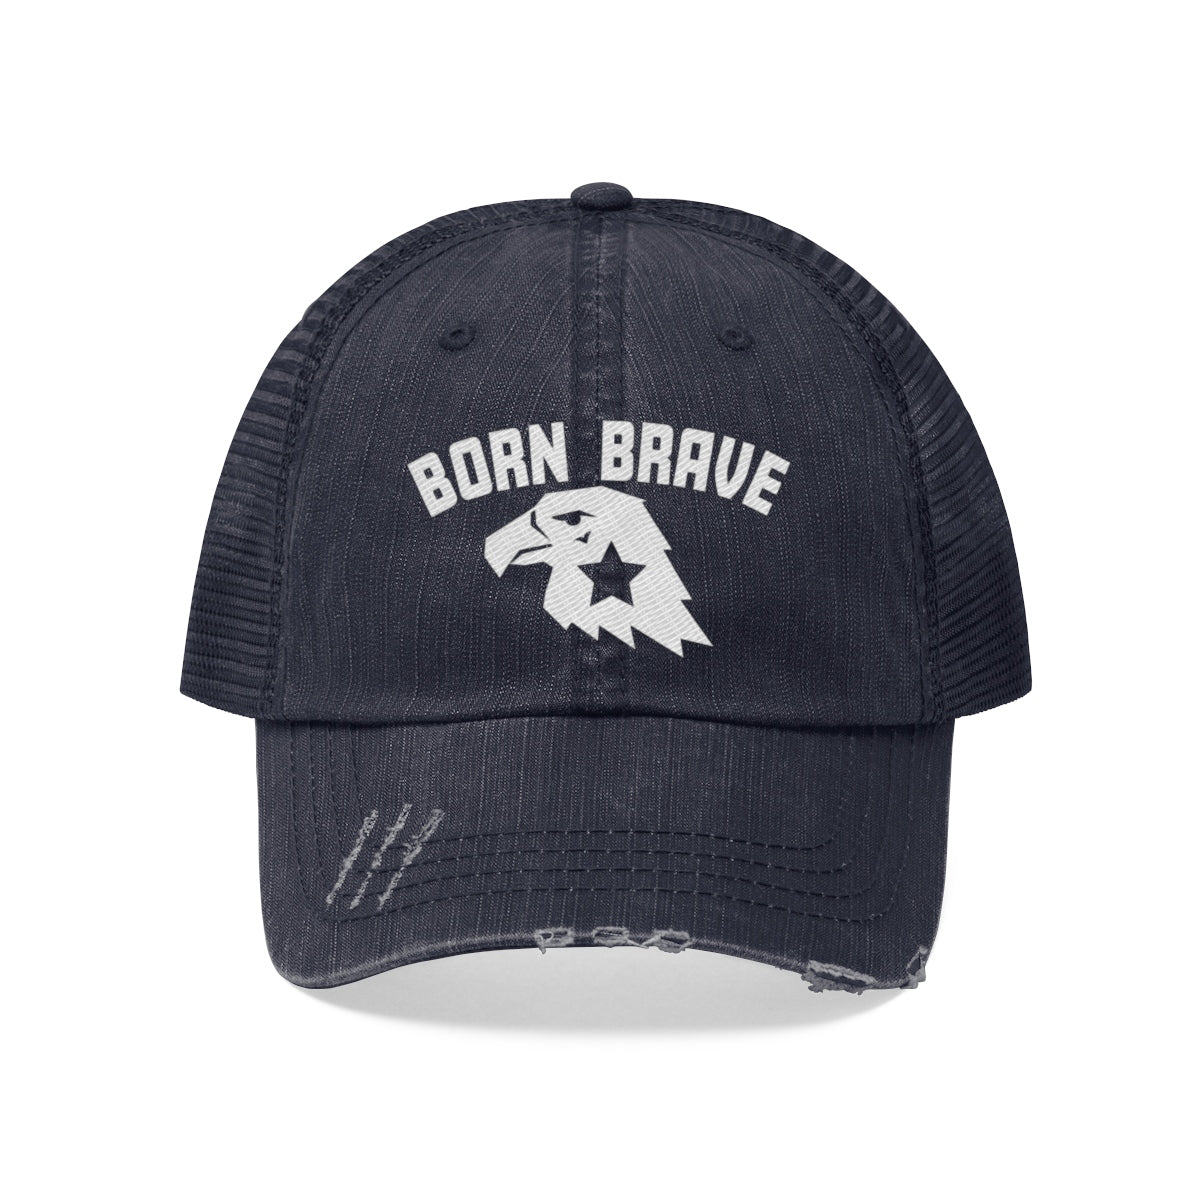 Born Brave - Trucker Hat